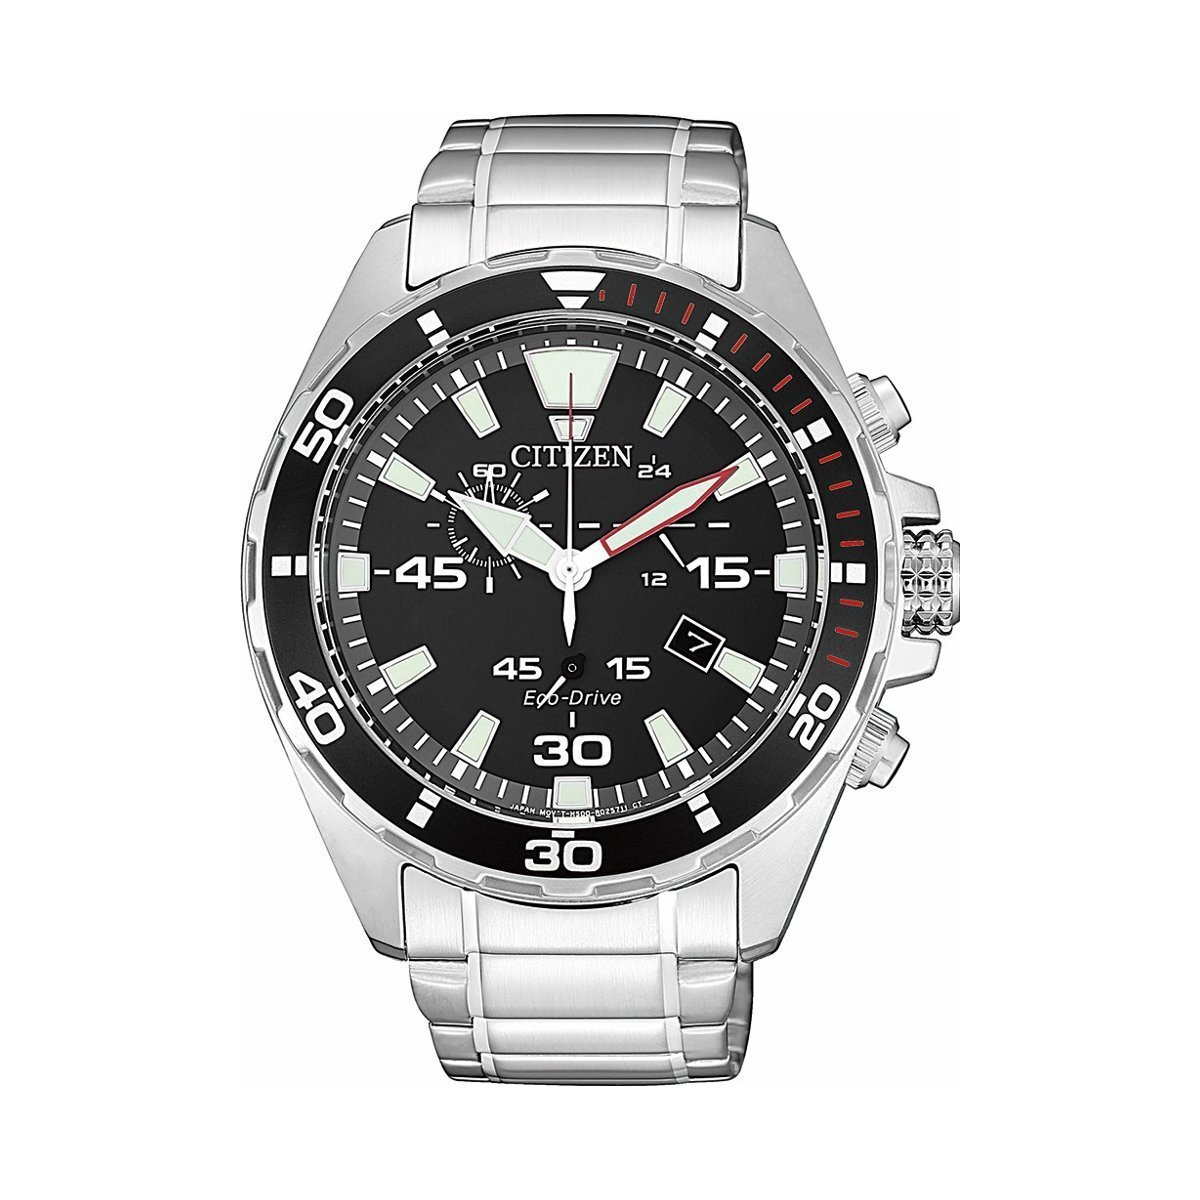 Montre Citizen Chrono Eco Drive AT2430-80E vue 1